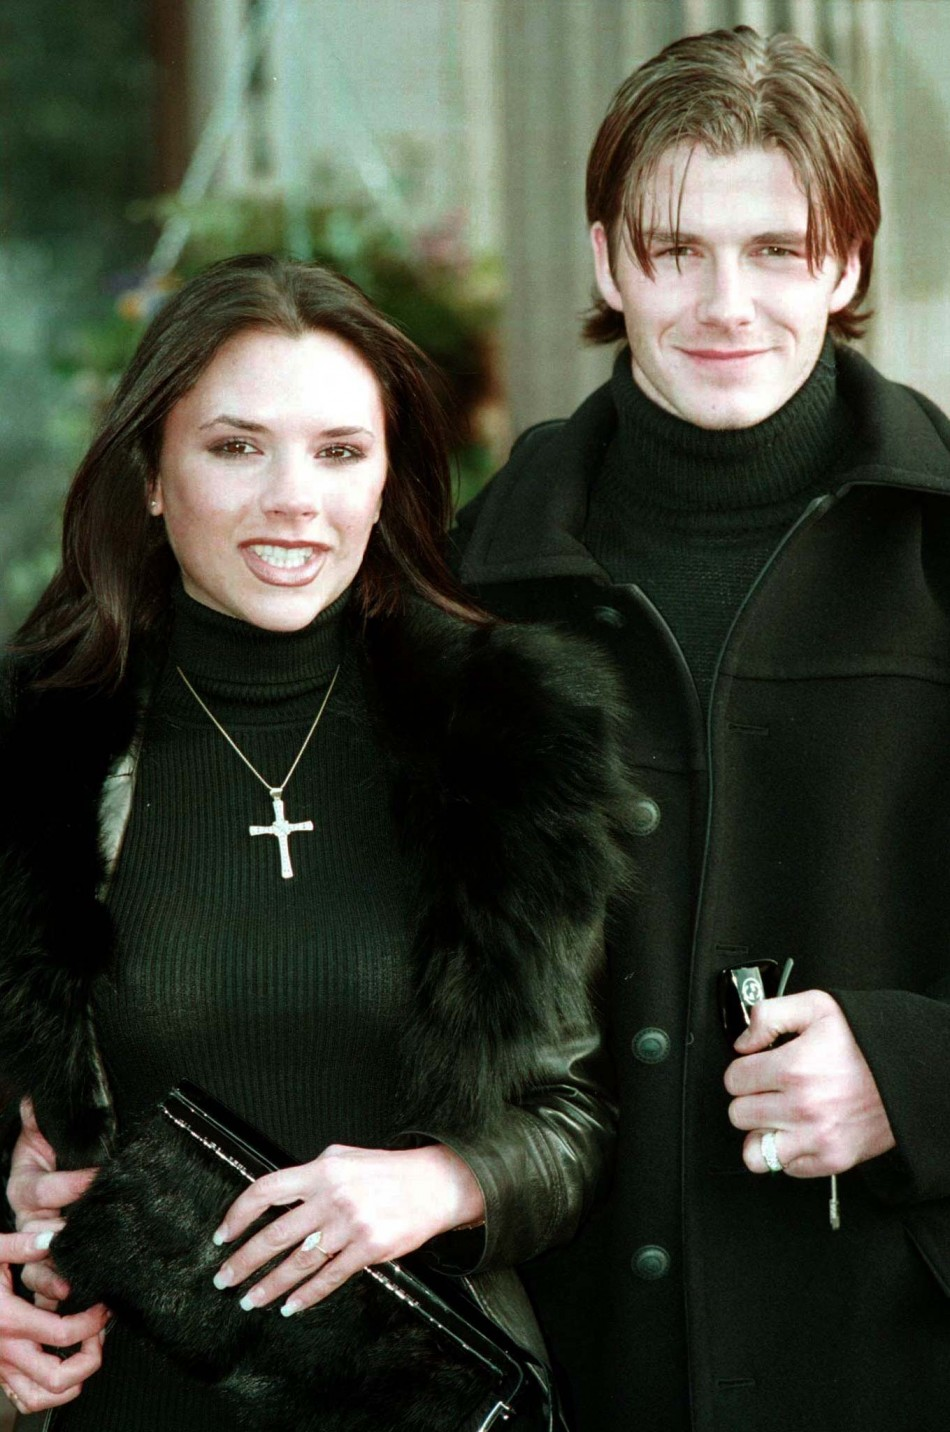 Victoria Adams, then a member of the British band The Spice Girls, poses for photographers with her fiancee, Manchester United footballer David Beckham January 25 1998. Beckham and Adams made their engagement public at a luxury hotel after media speculati